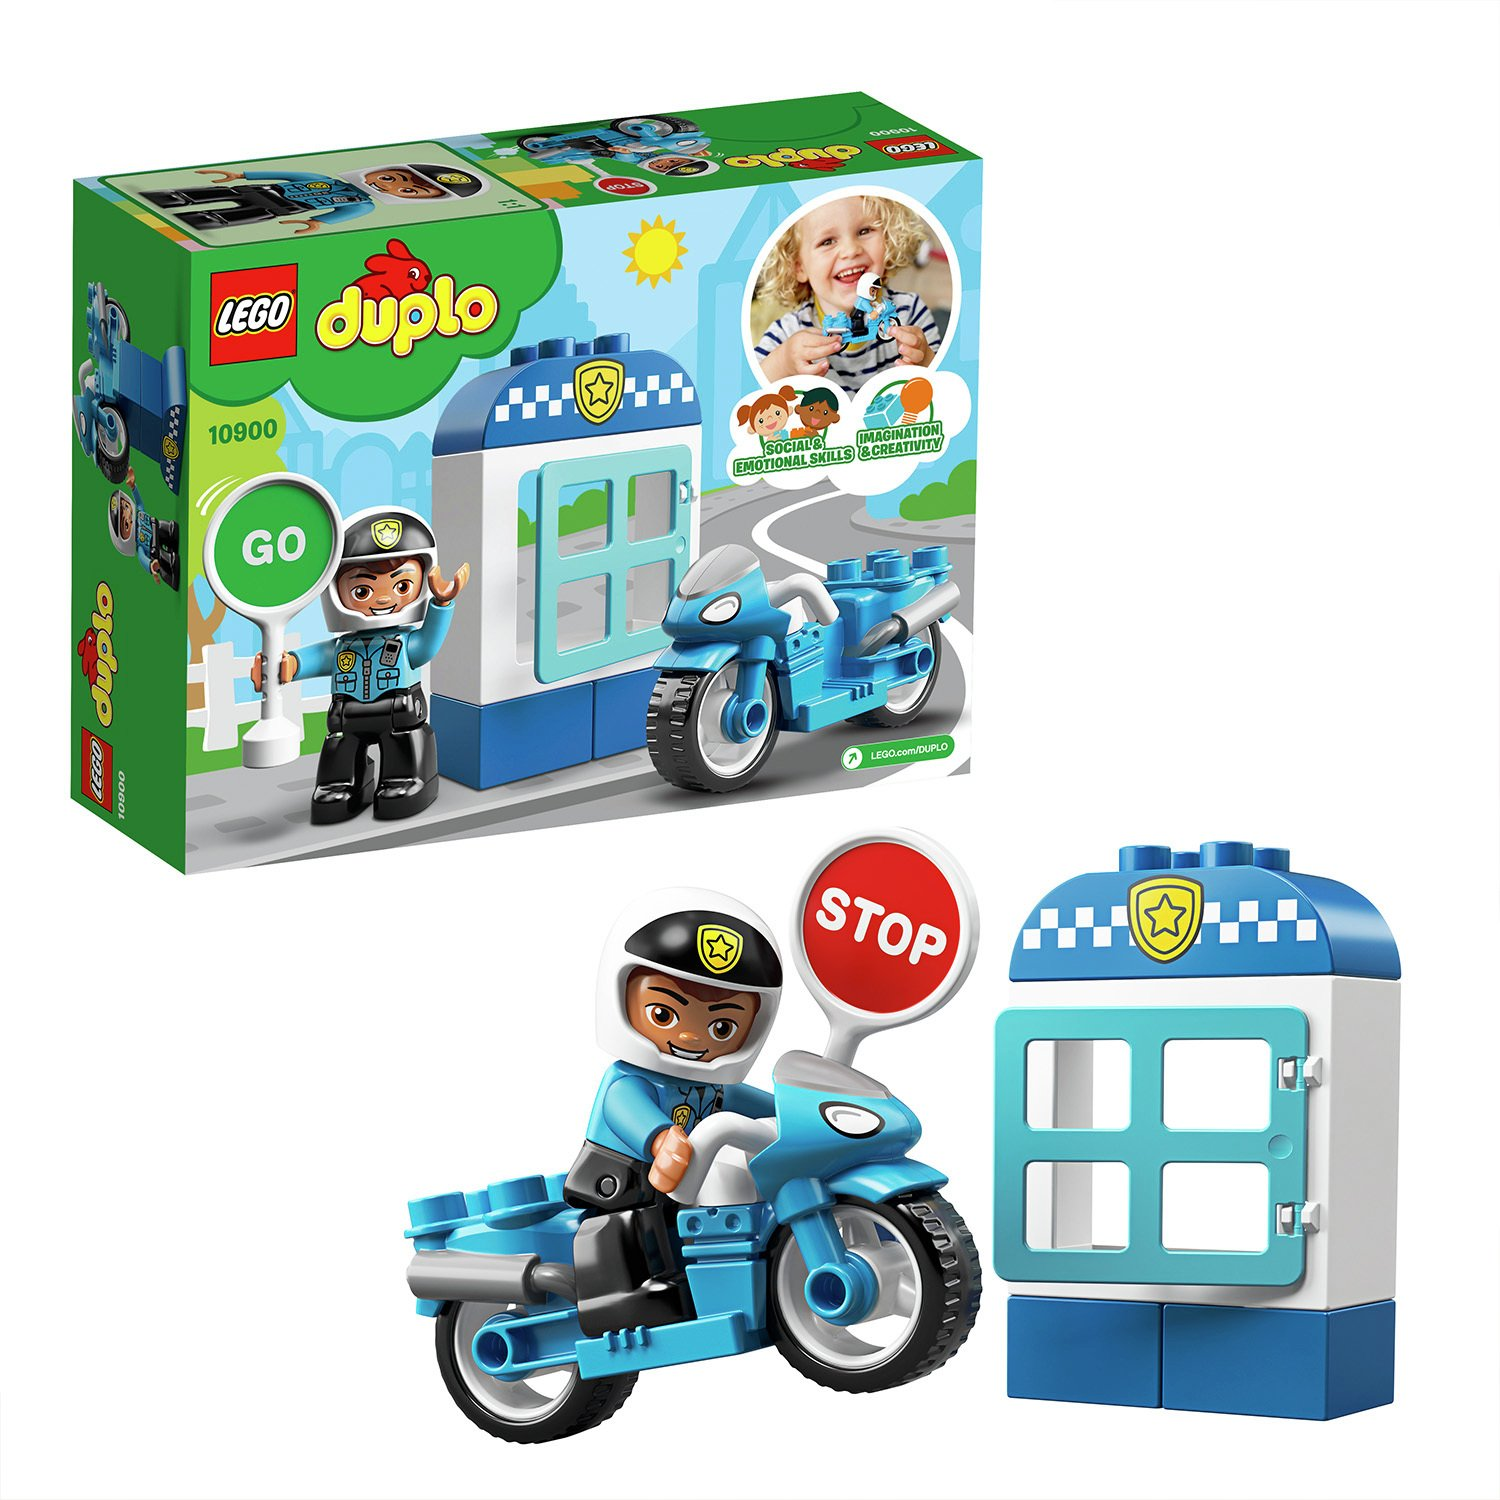 LEGO DUPLO Police Toy Bike - 10900